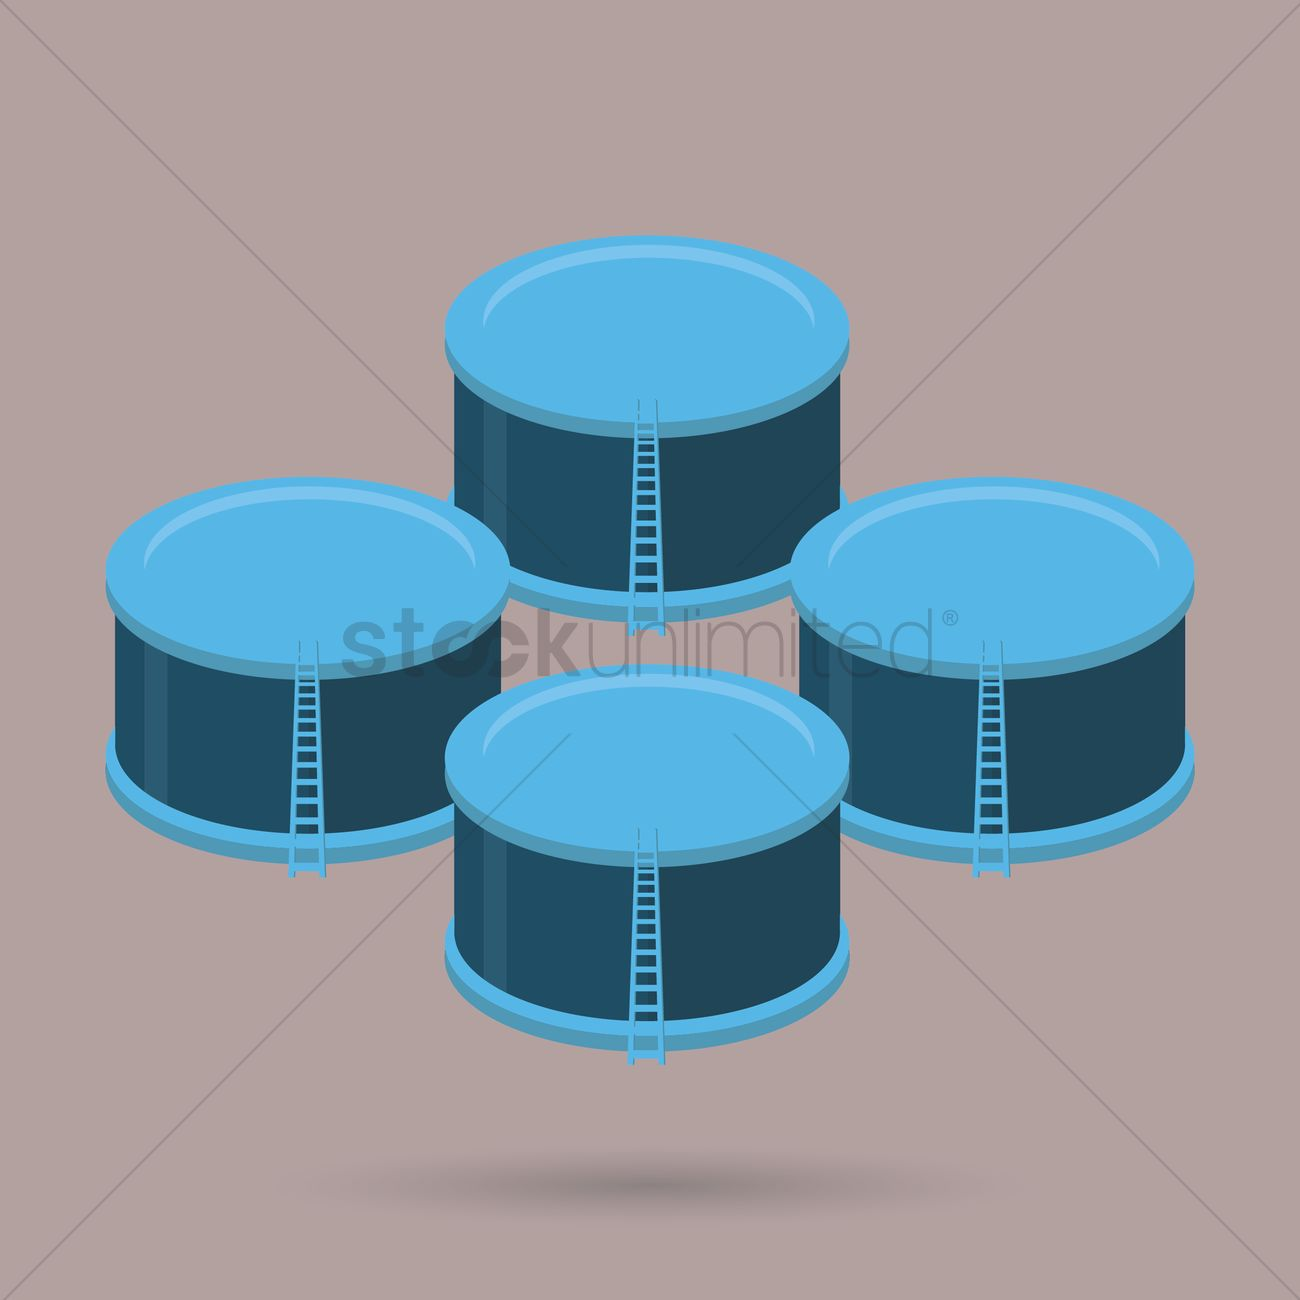 Free Oil storage container Vector Image 1283178 StockUnlimited